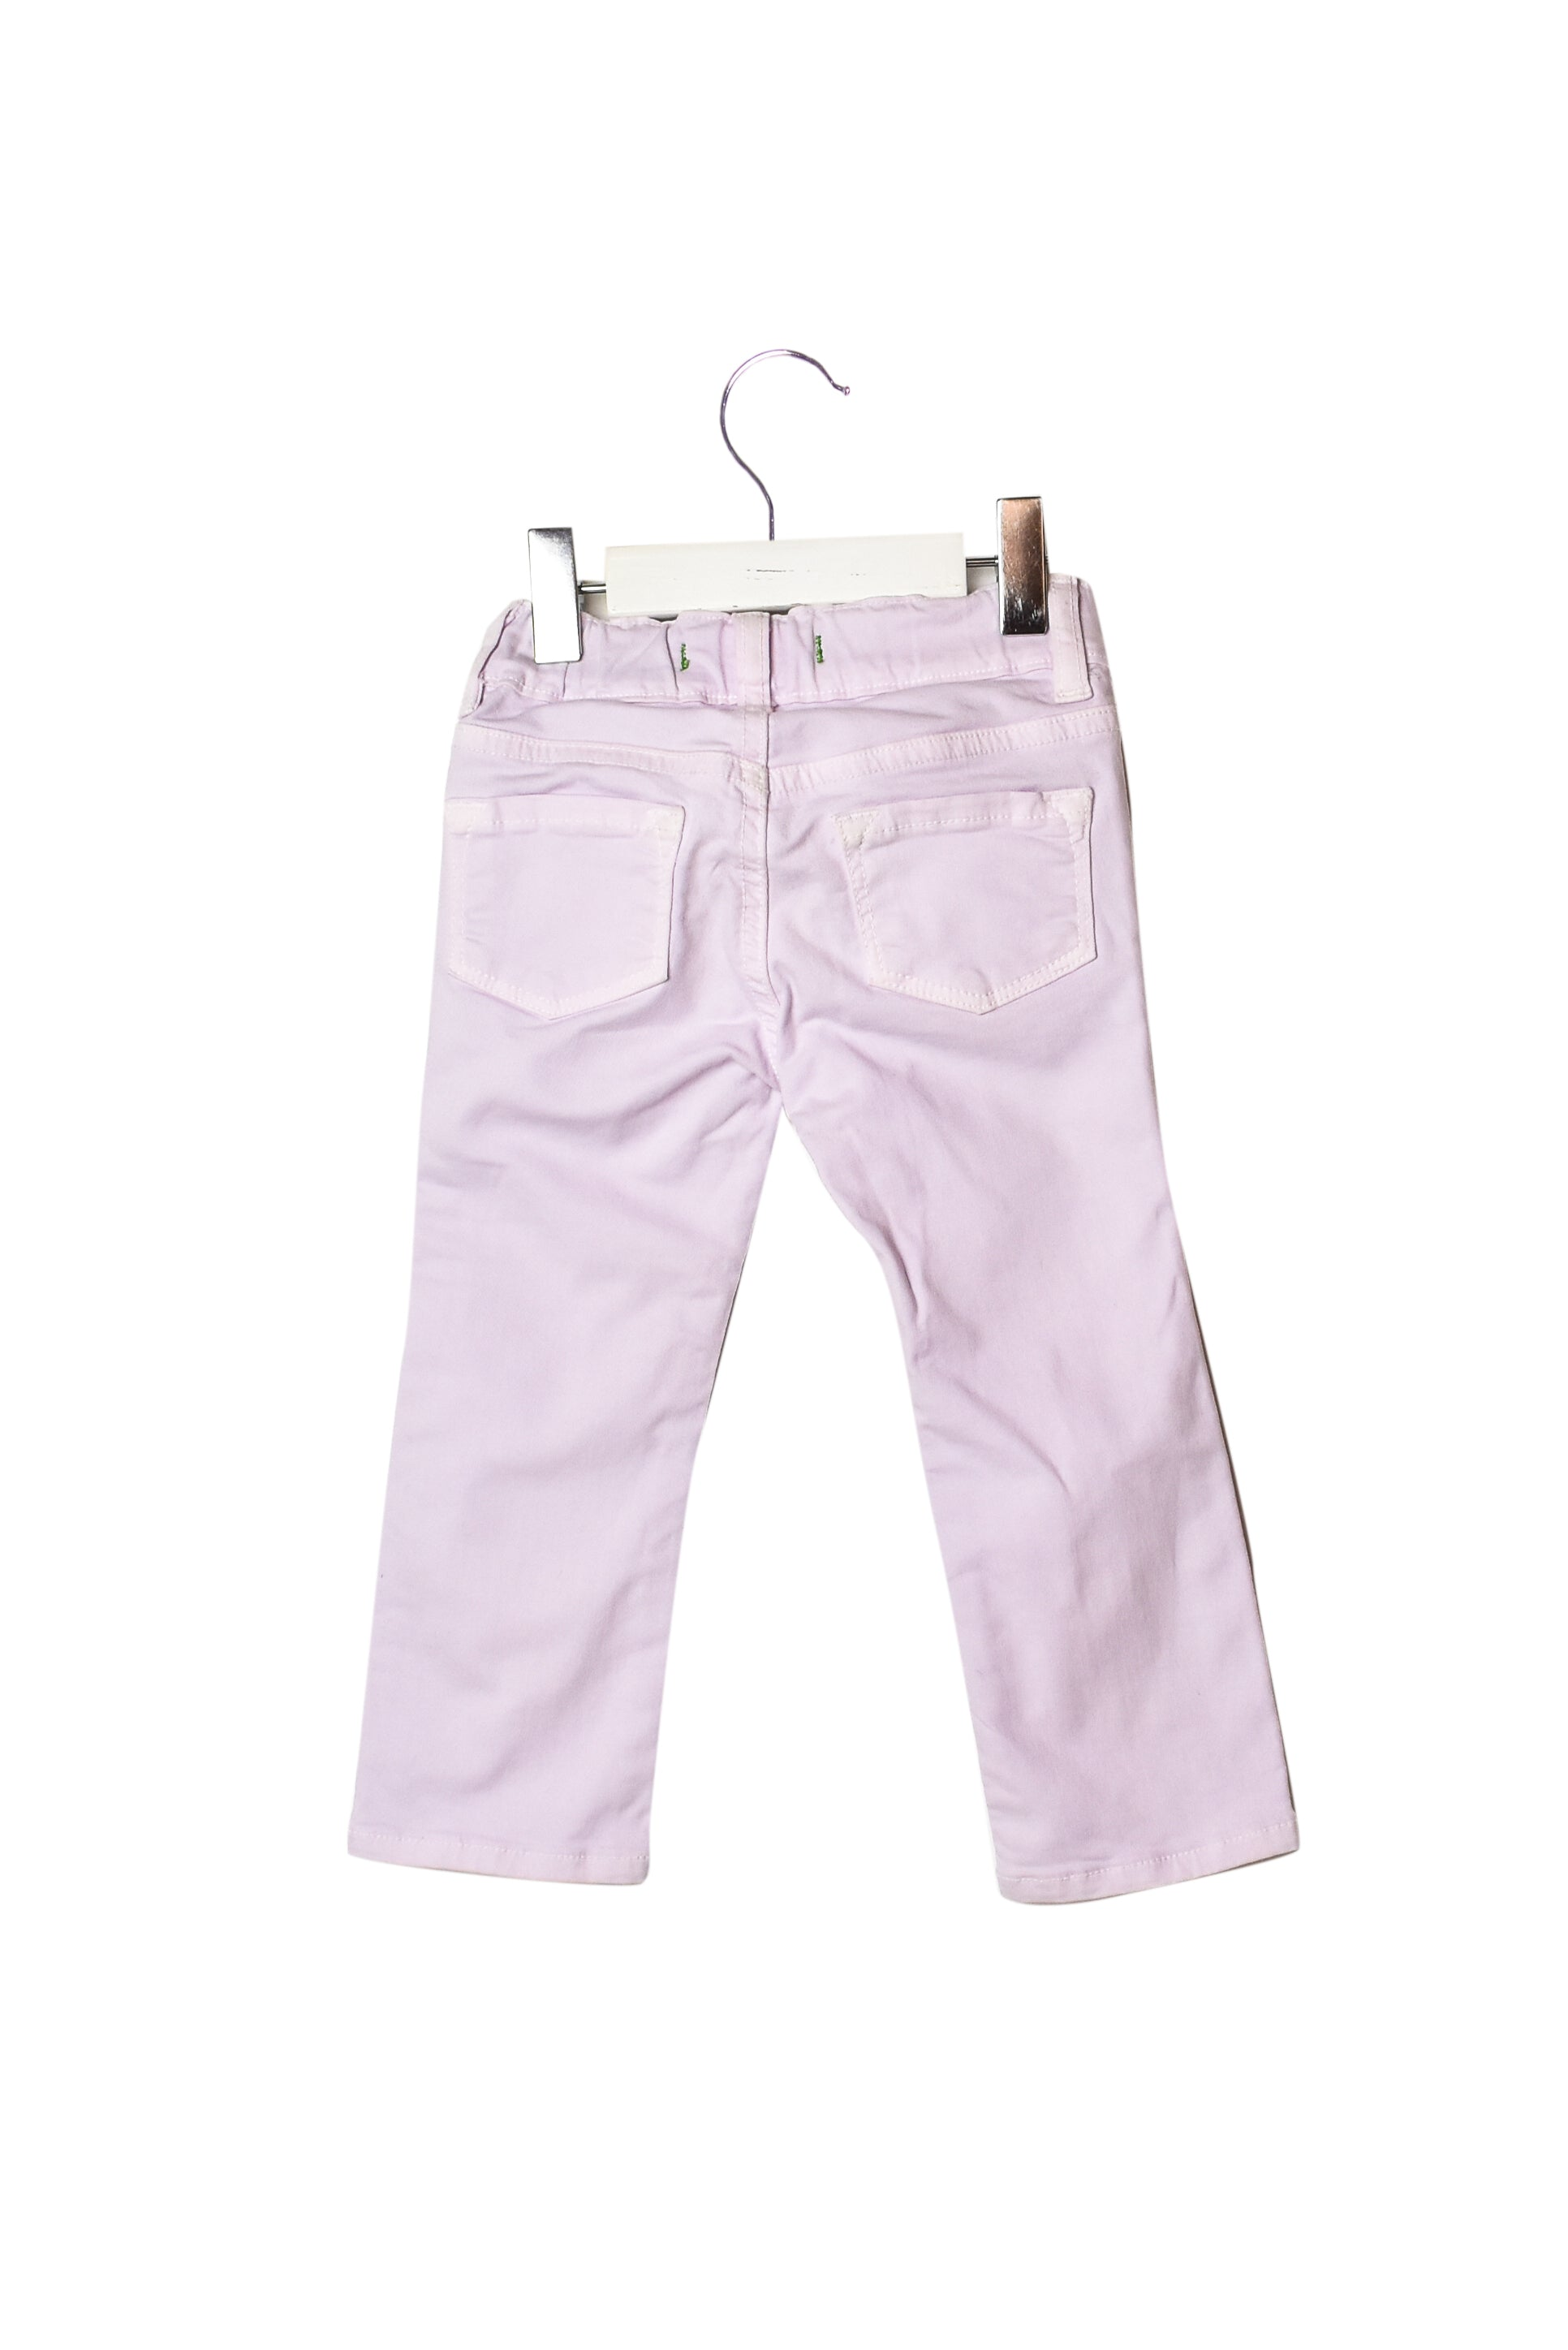 10008235 J Brand Baby~ Jeans 18-24M at Retykle